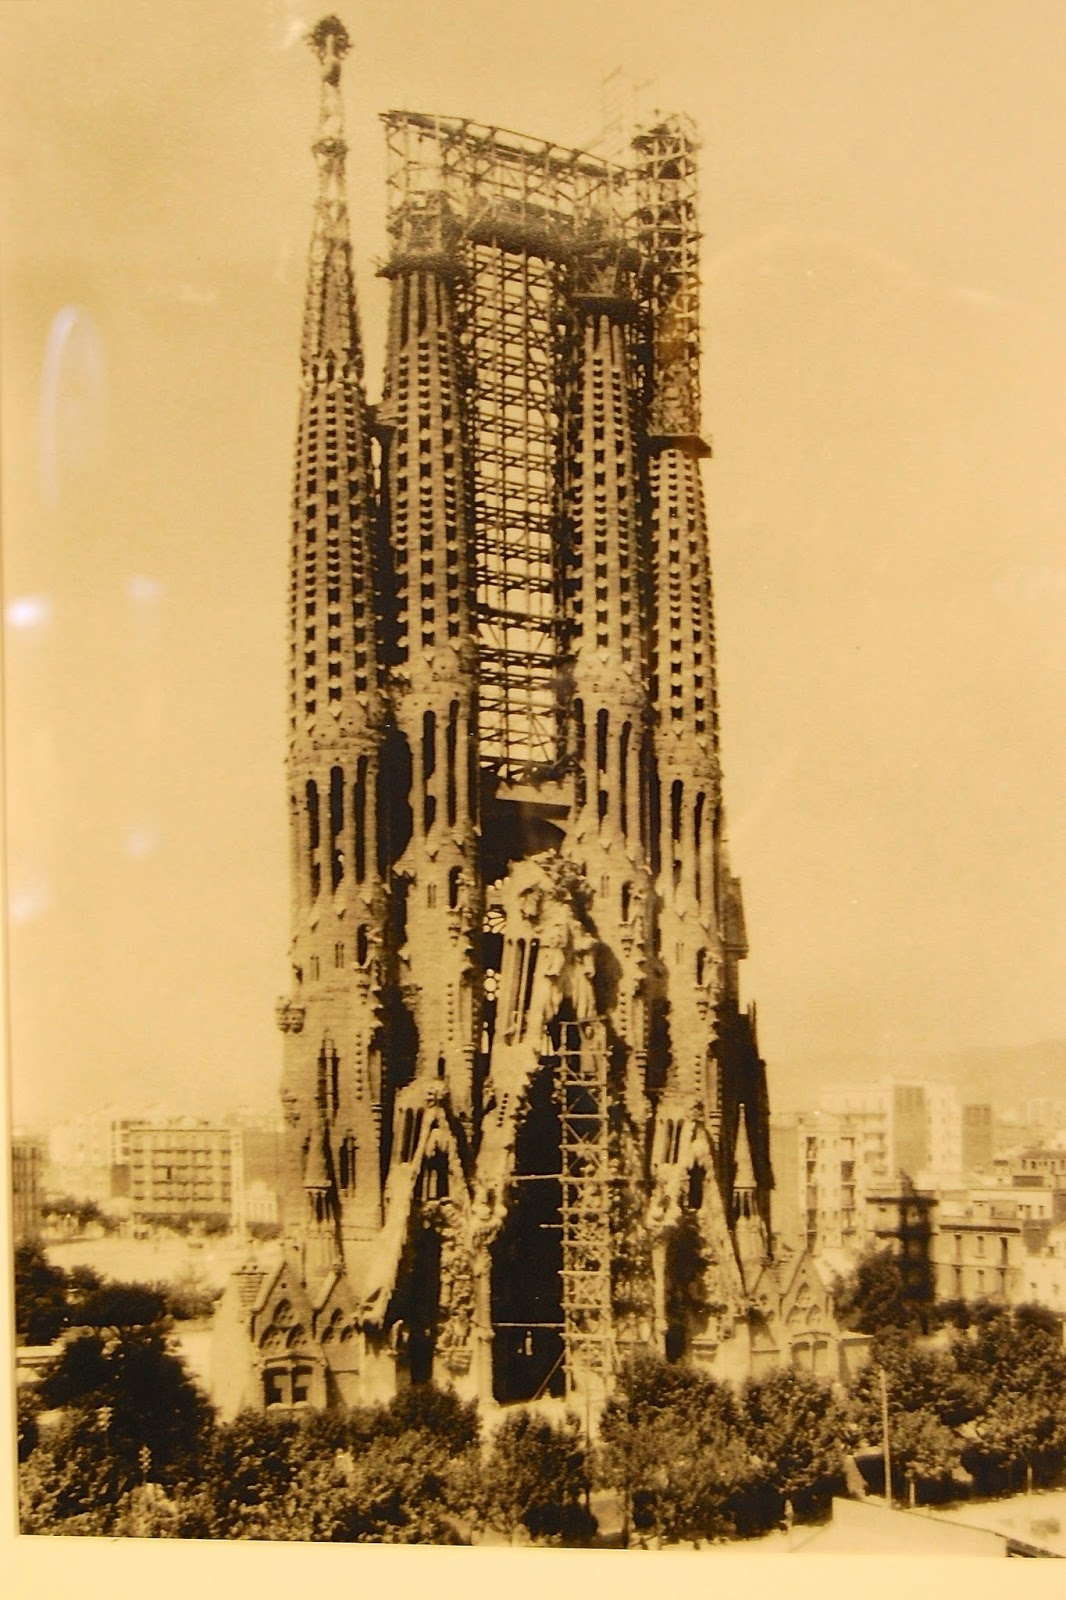 Nativity Facade in 1926